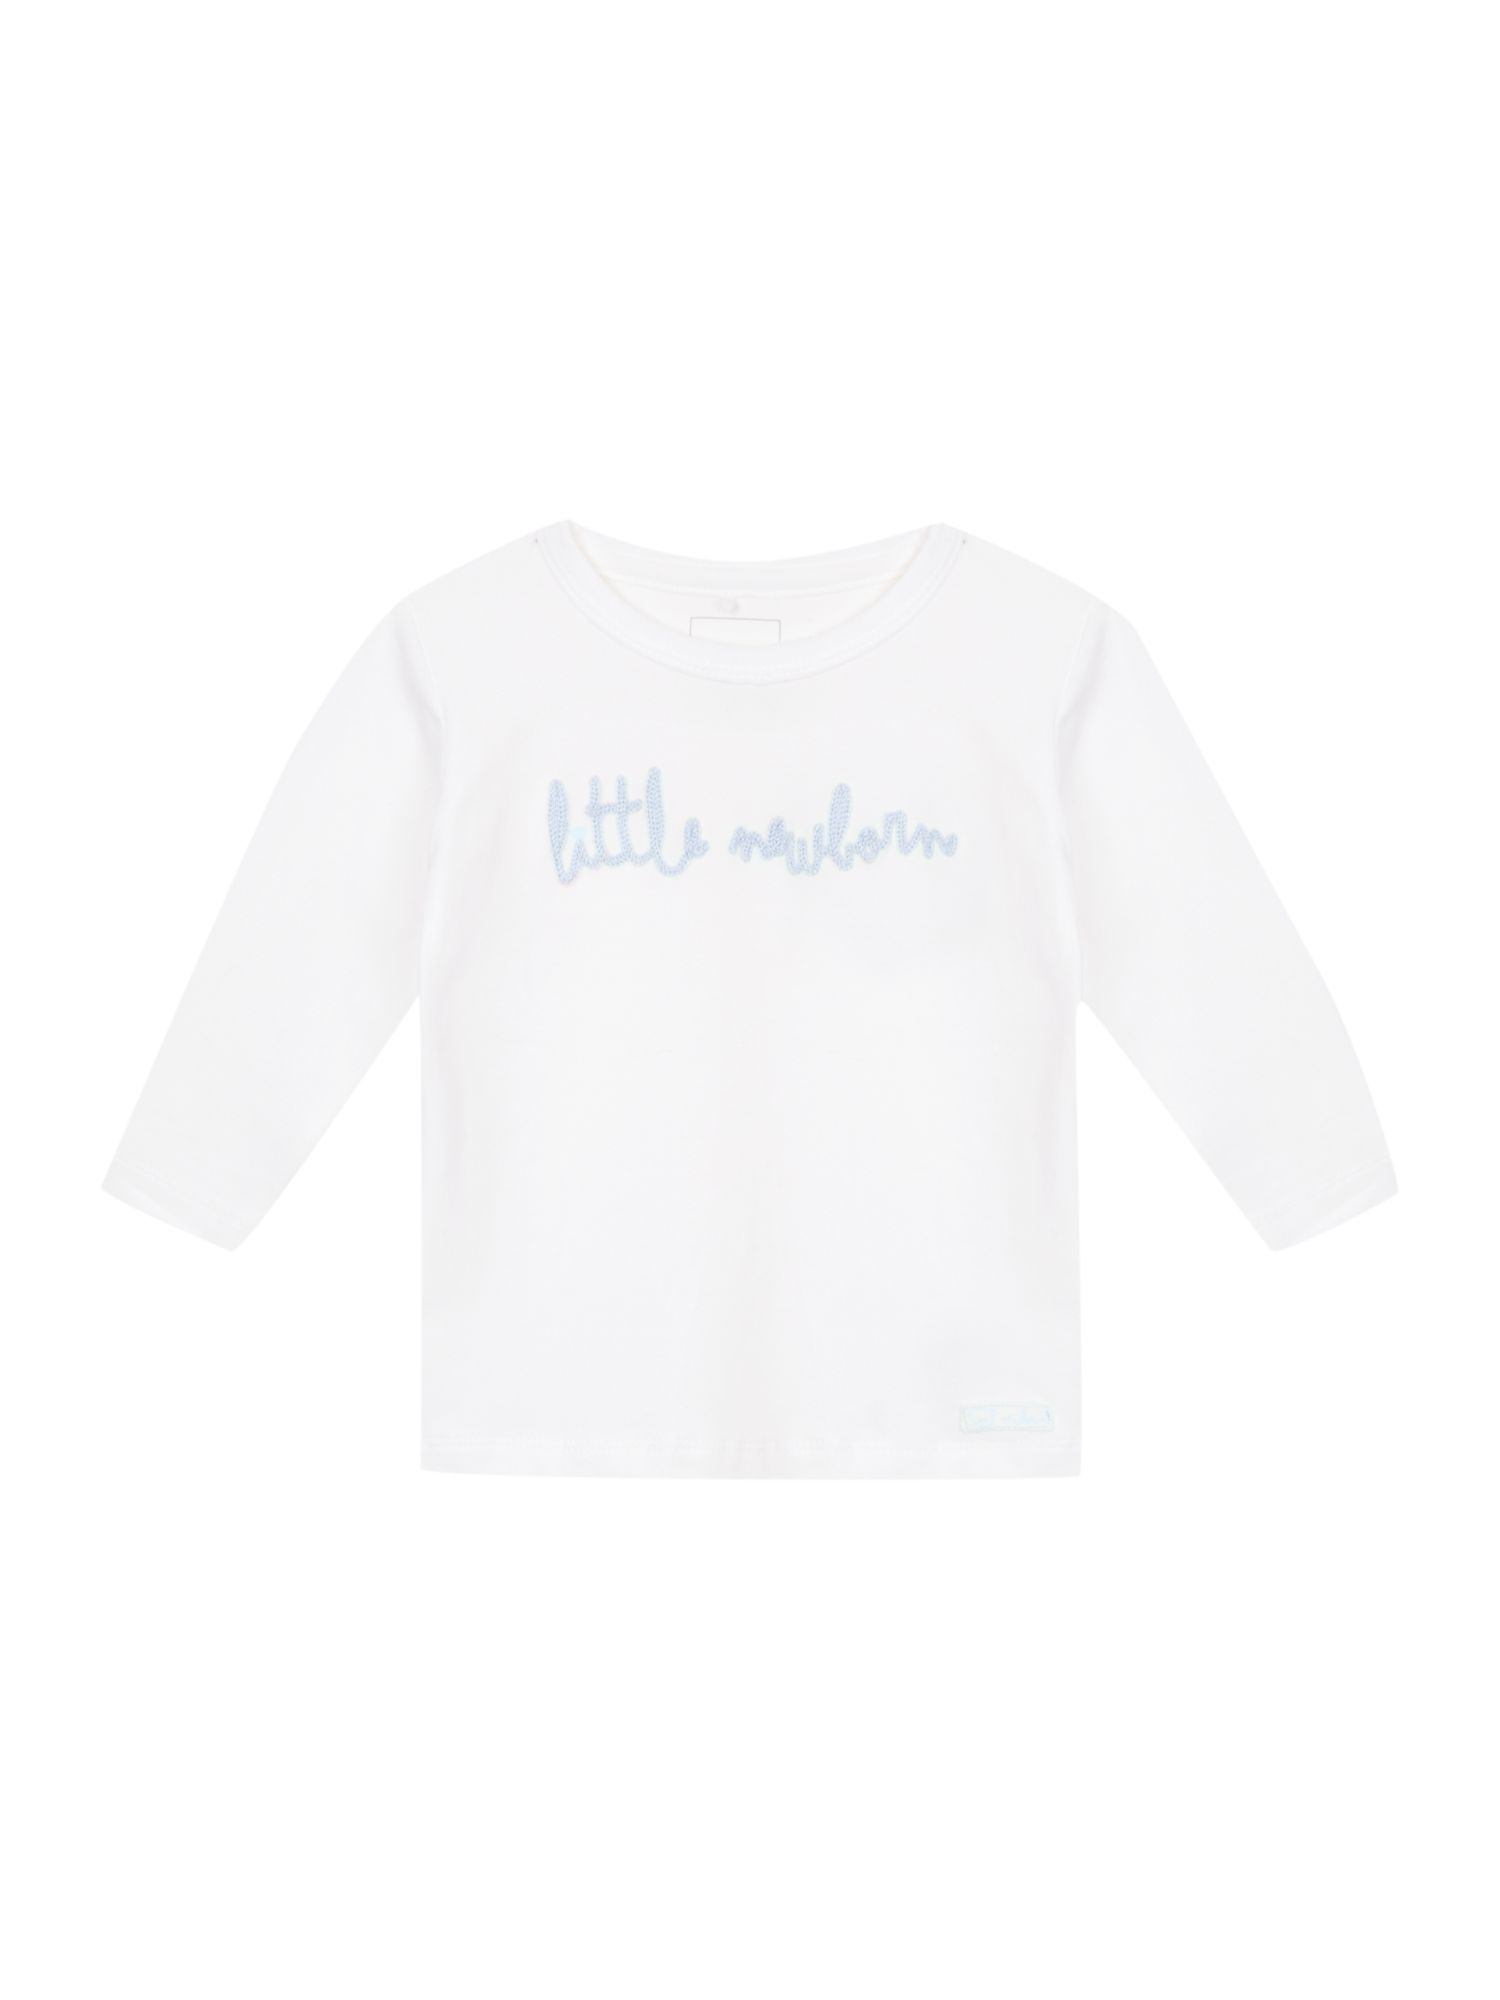 Babys Little Newborn slogan t-shirt